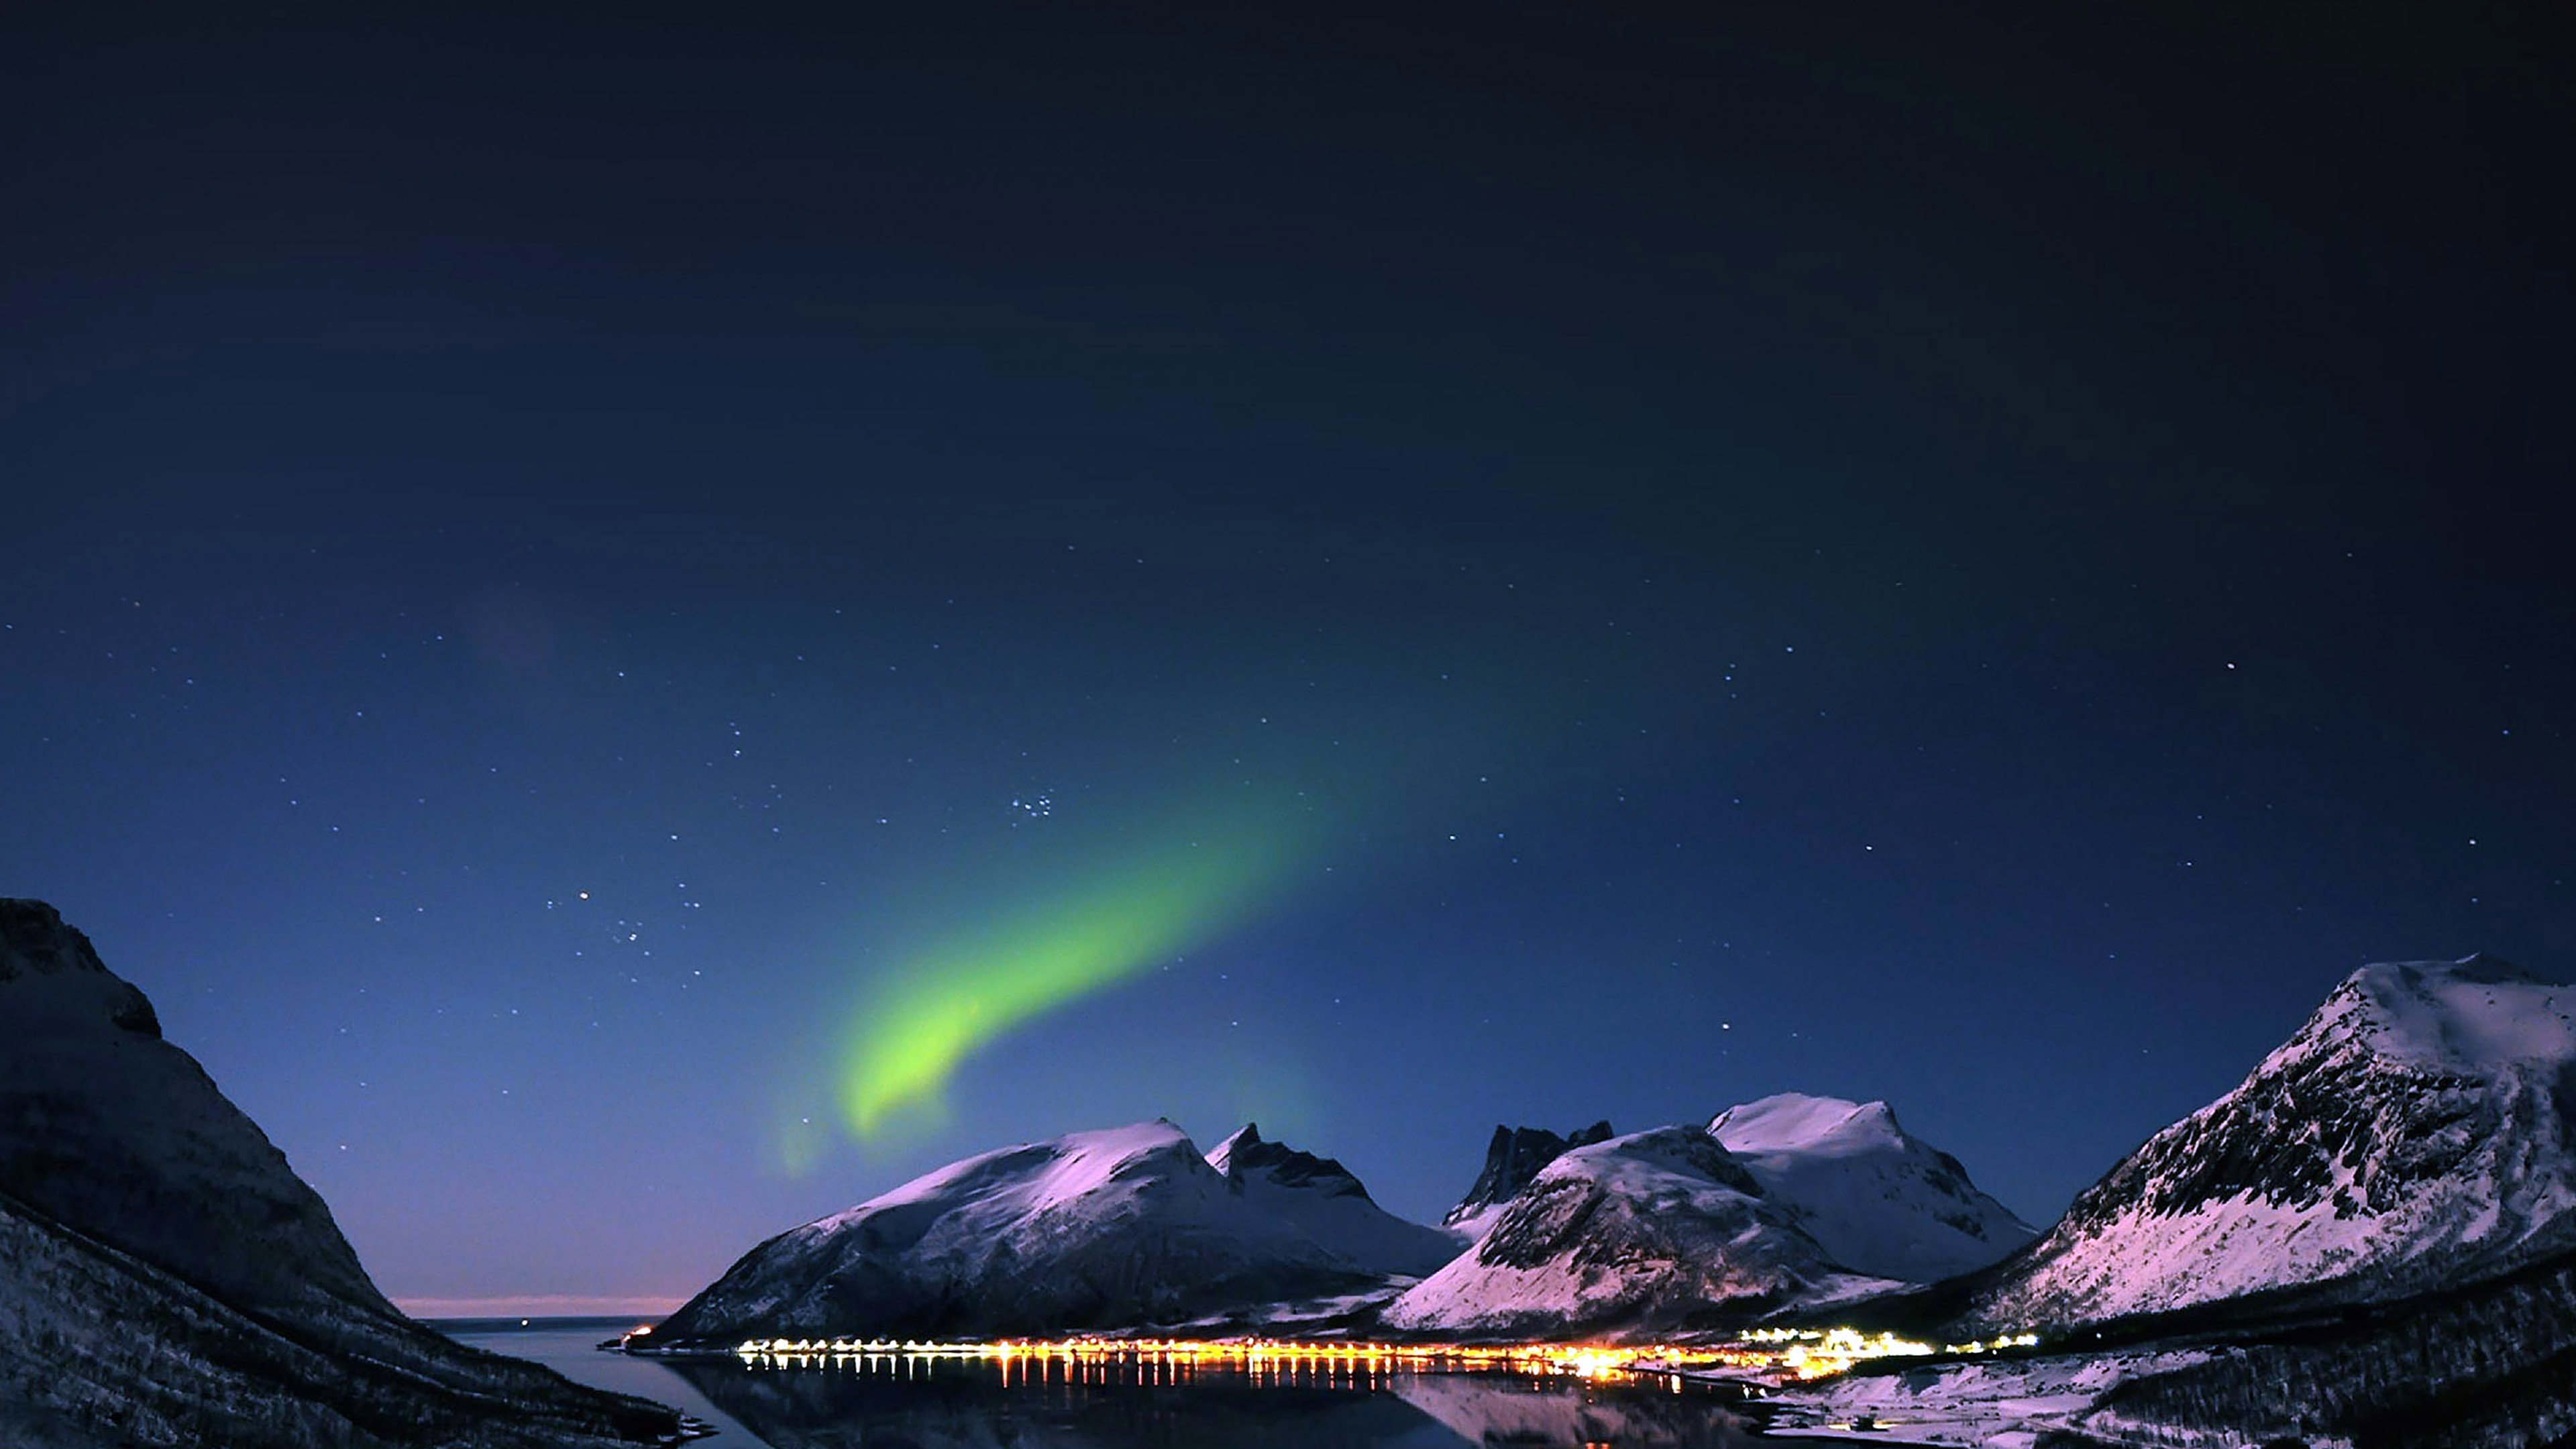 mc73-wallpaper-aurora-filled-night-sky-star - Papers.co